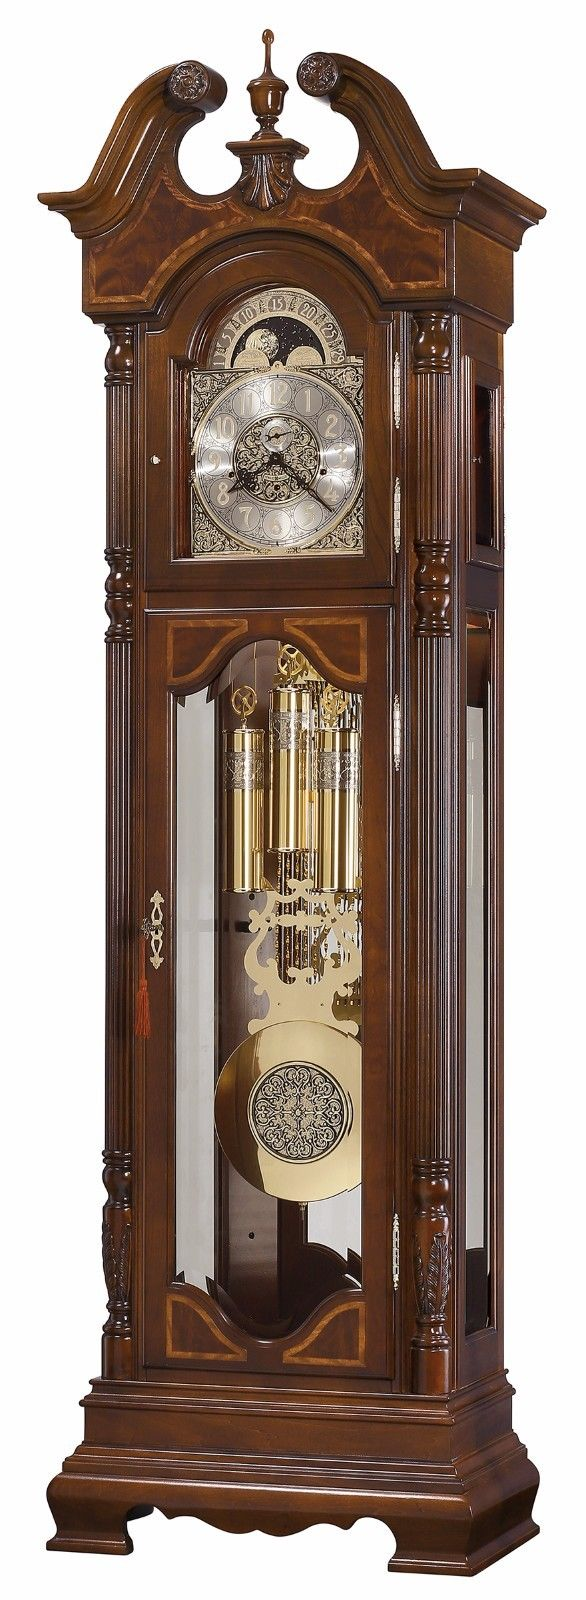 Howard Miller Polk Grandfather Floor Clock 611-246 611246 FREE Shipping